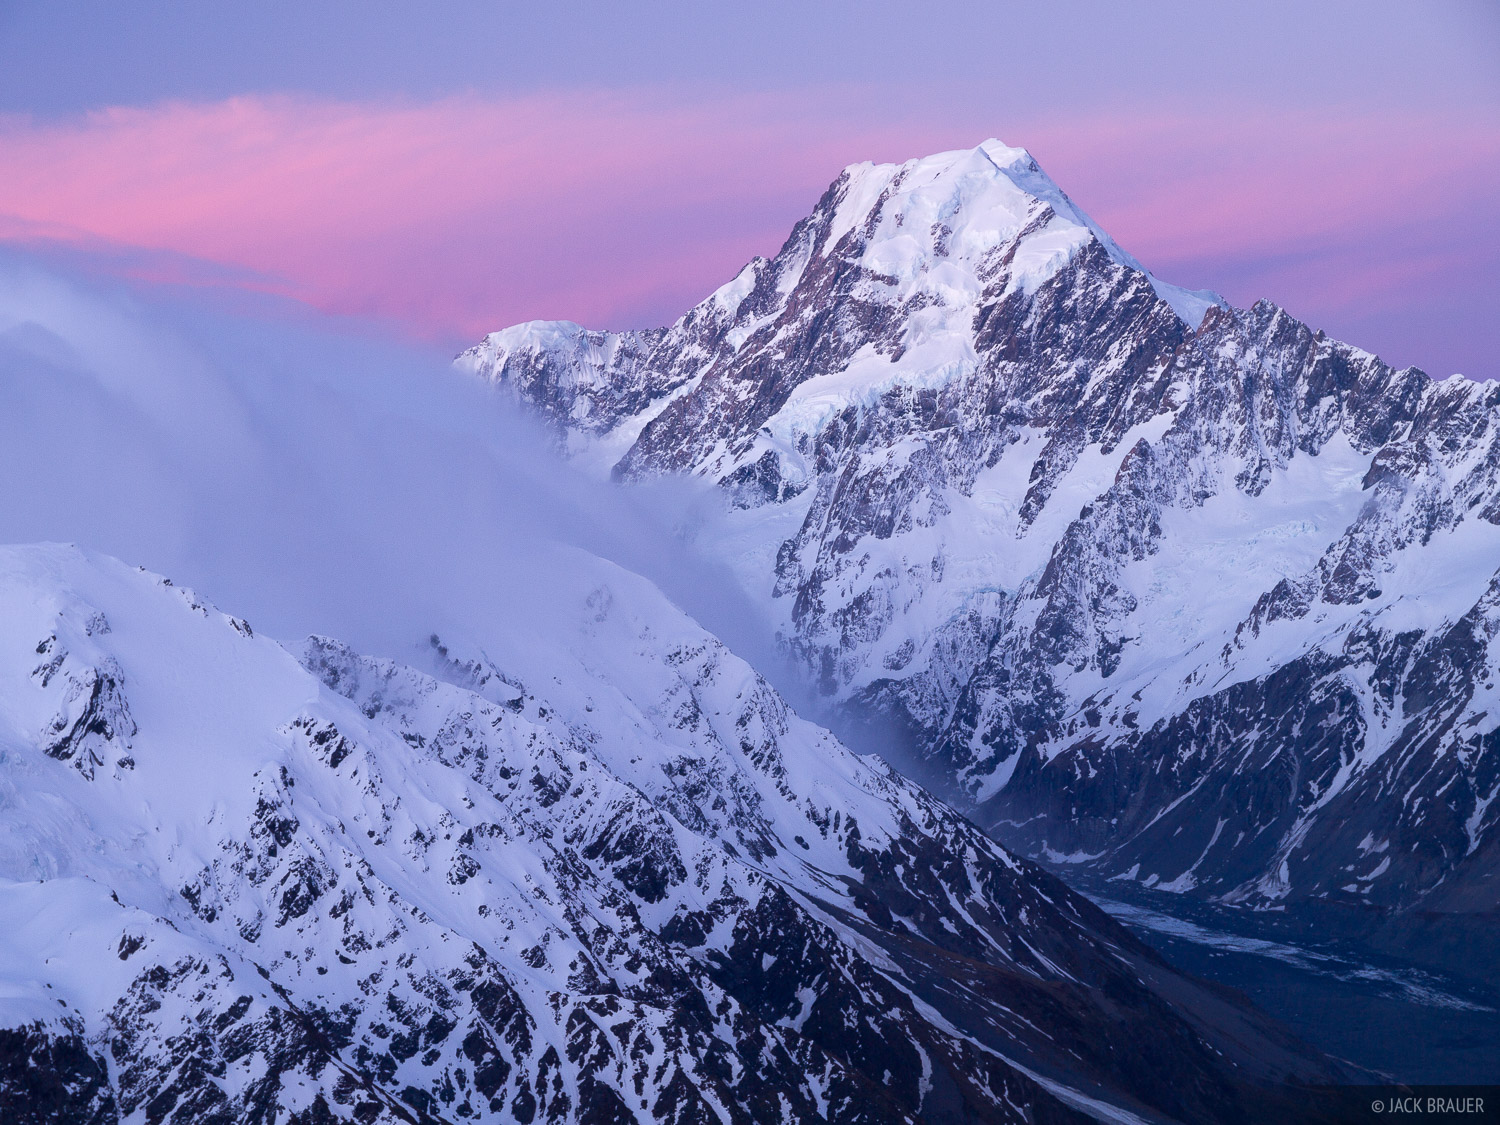 Mount Cook, New Zealand, Aoraki, Southern Alps, photo